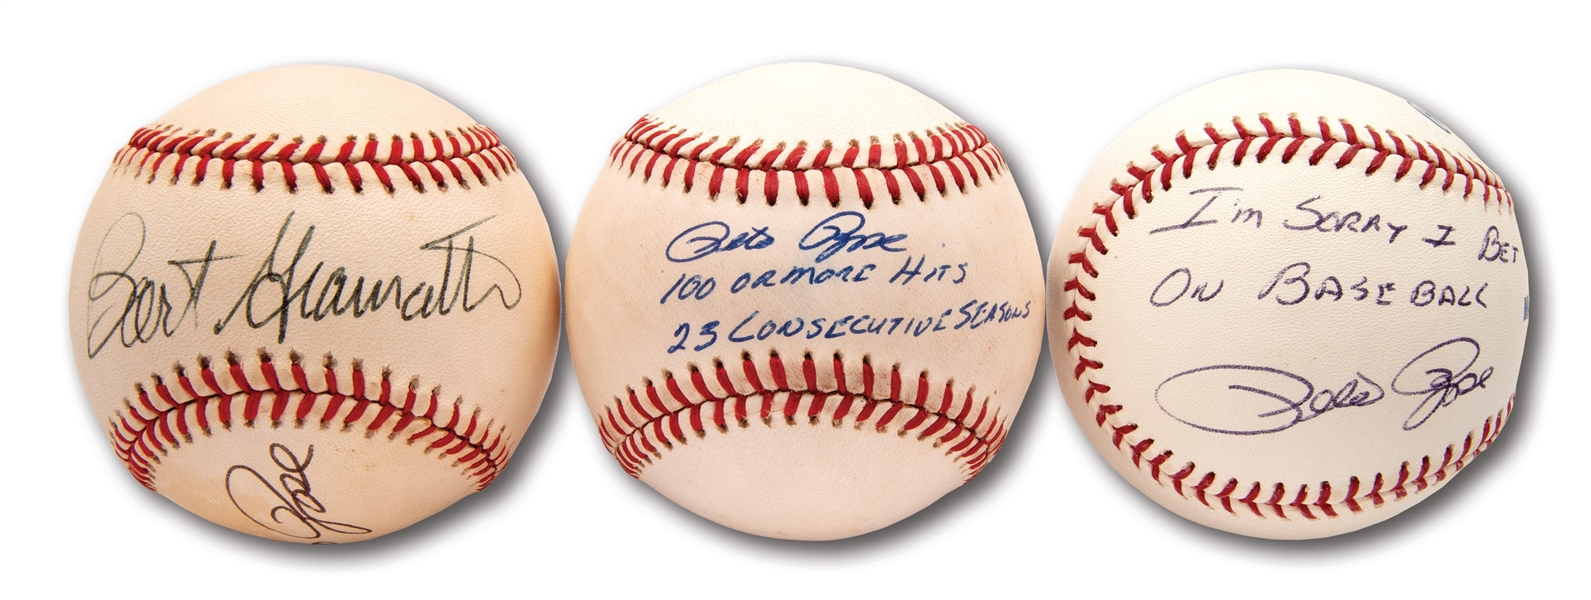 LOT OF (3) PETE ROSE AUTOGRAPHED BASEBALLS INCL. ROSE/GIAMATTI DUAL SIGNED